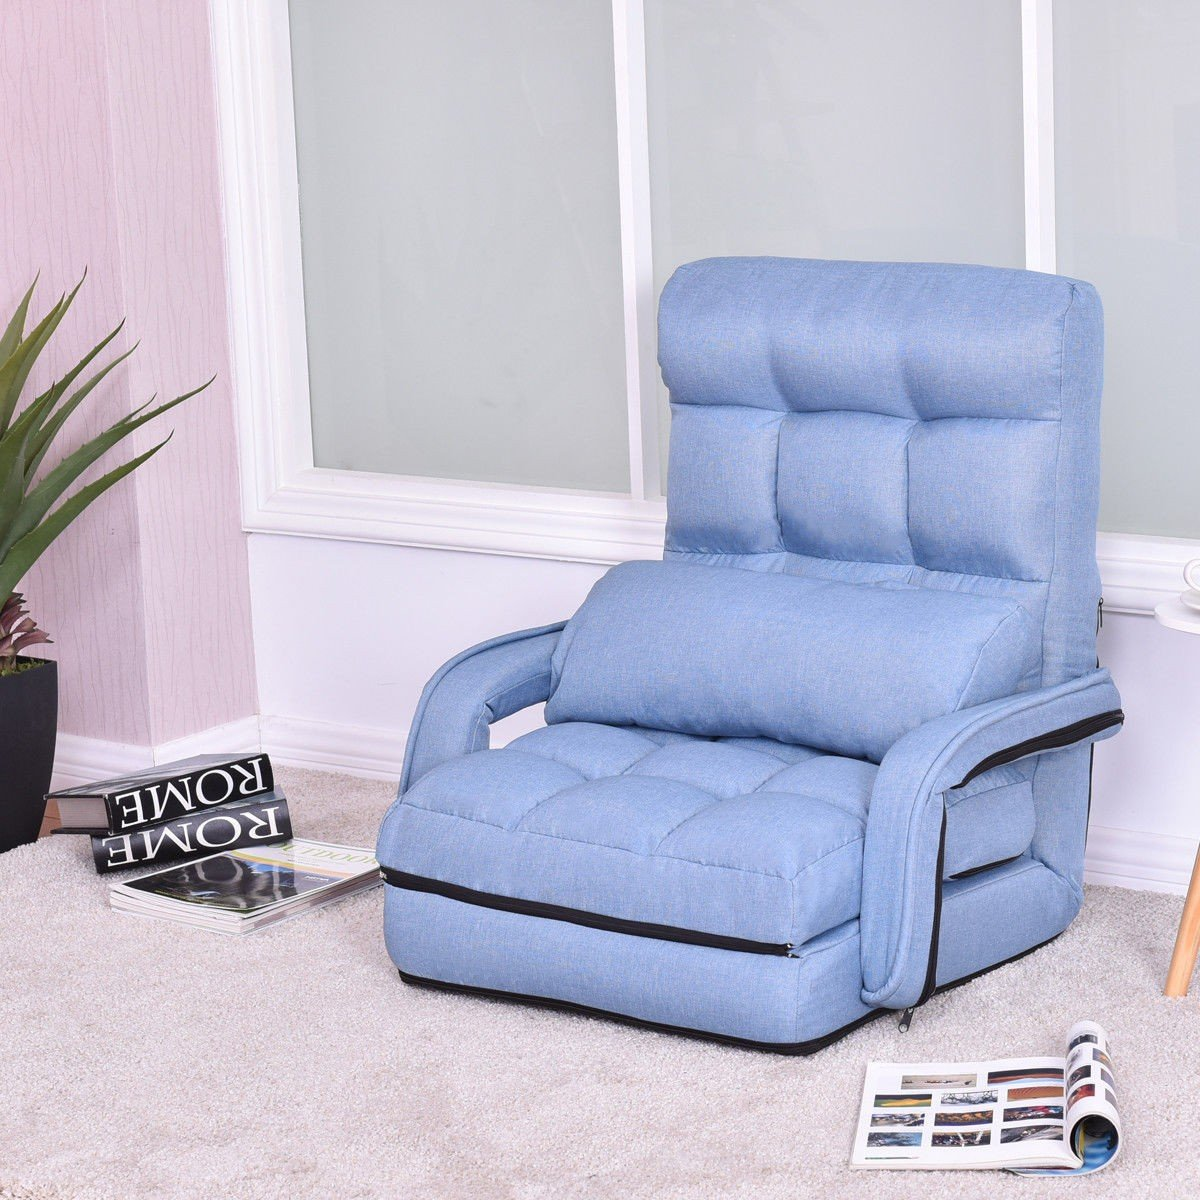 MD Group Folding Lazy Floor Chair Sofa with Armrests and Pillow, Blue